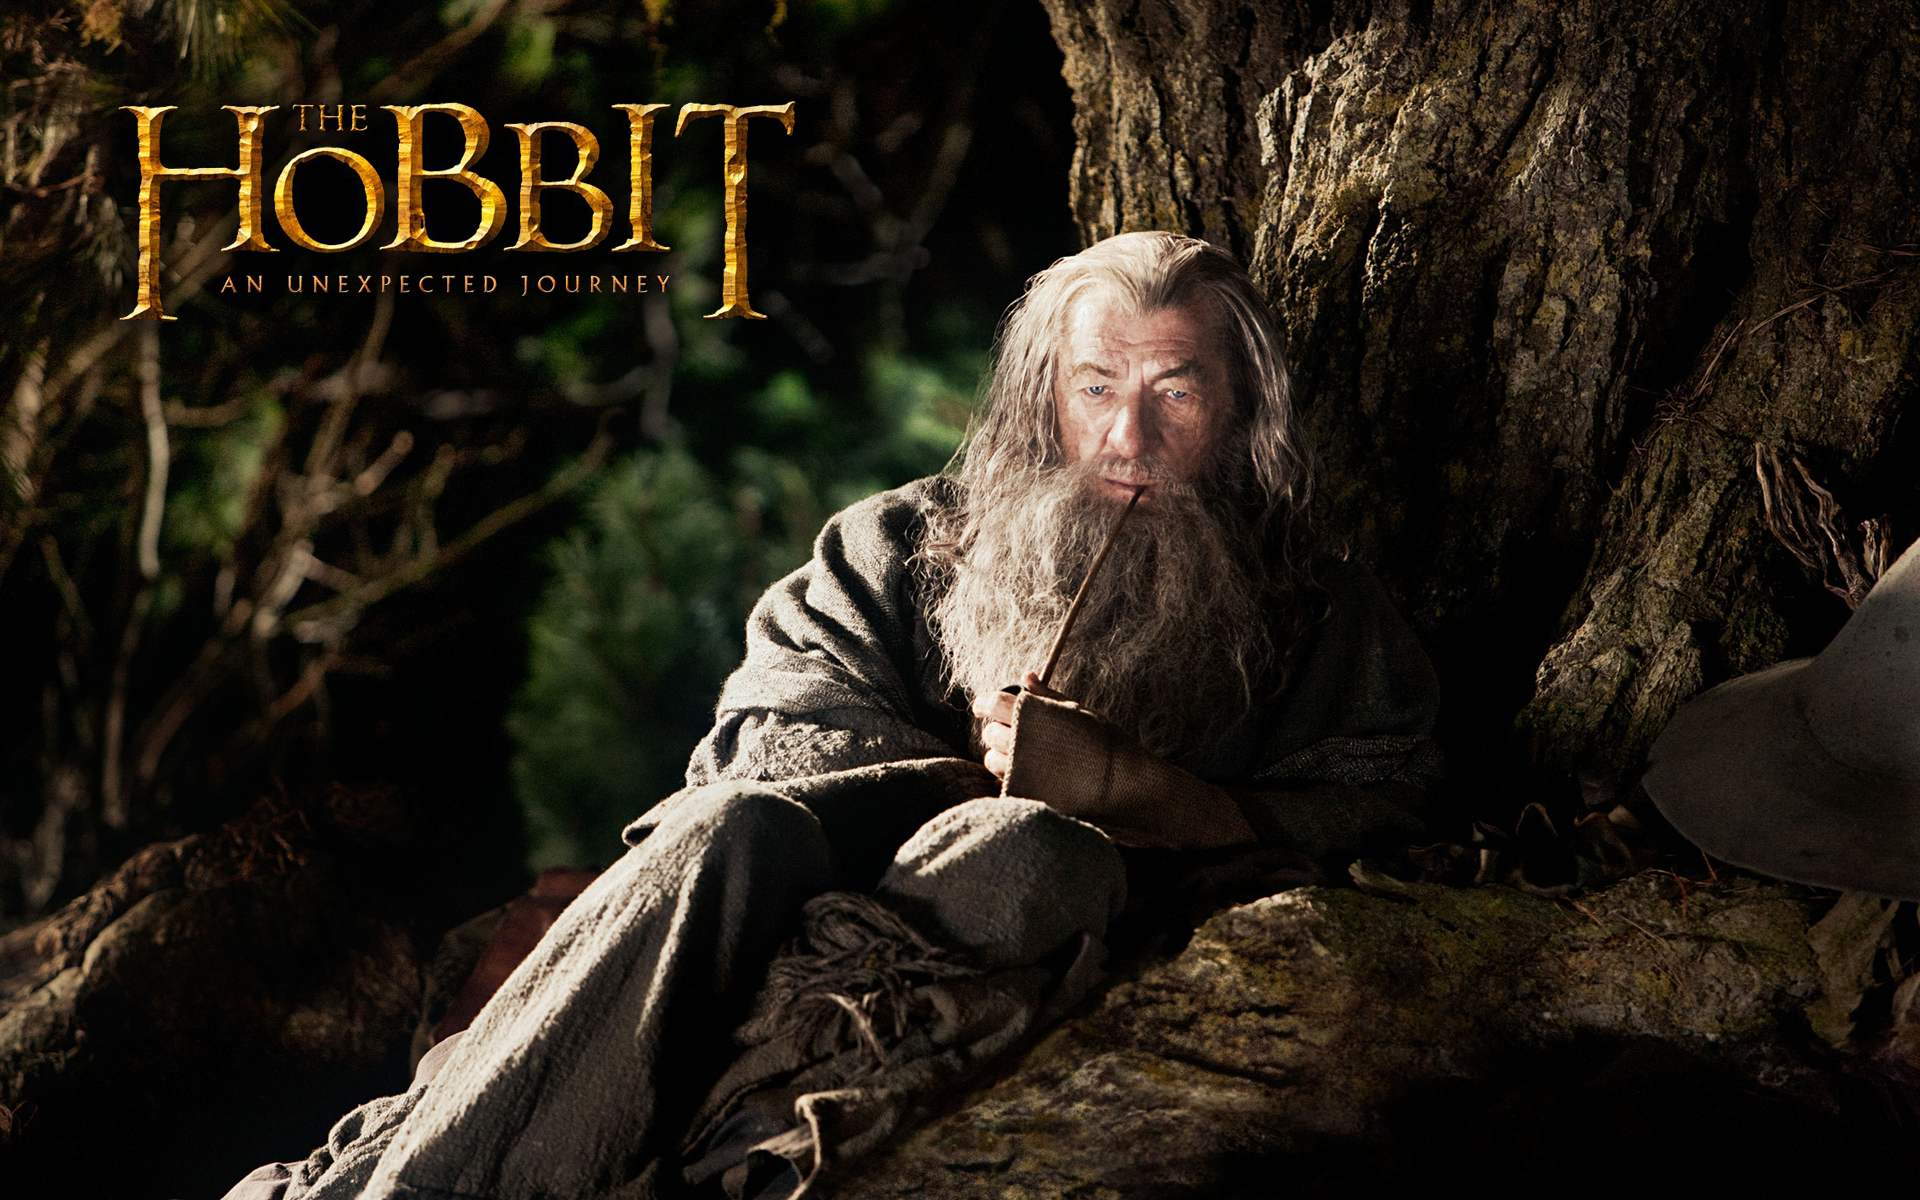 The Hobbit Wallpaper Desktop Wallpaper Size 1920x1200 AmazingPict 1920x1200